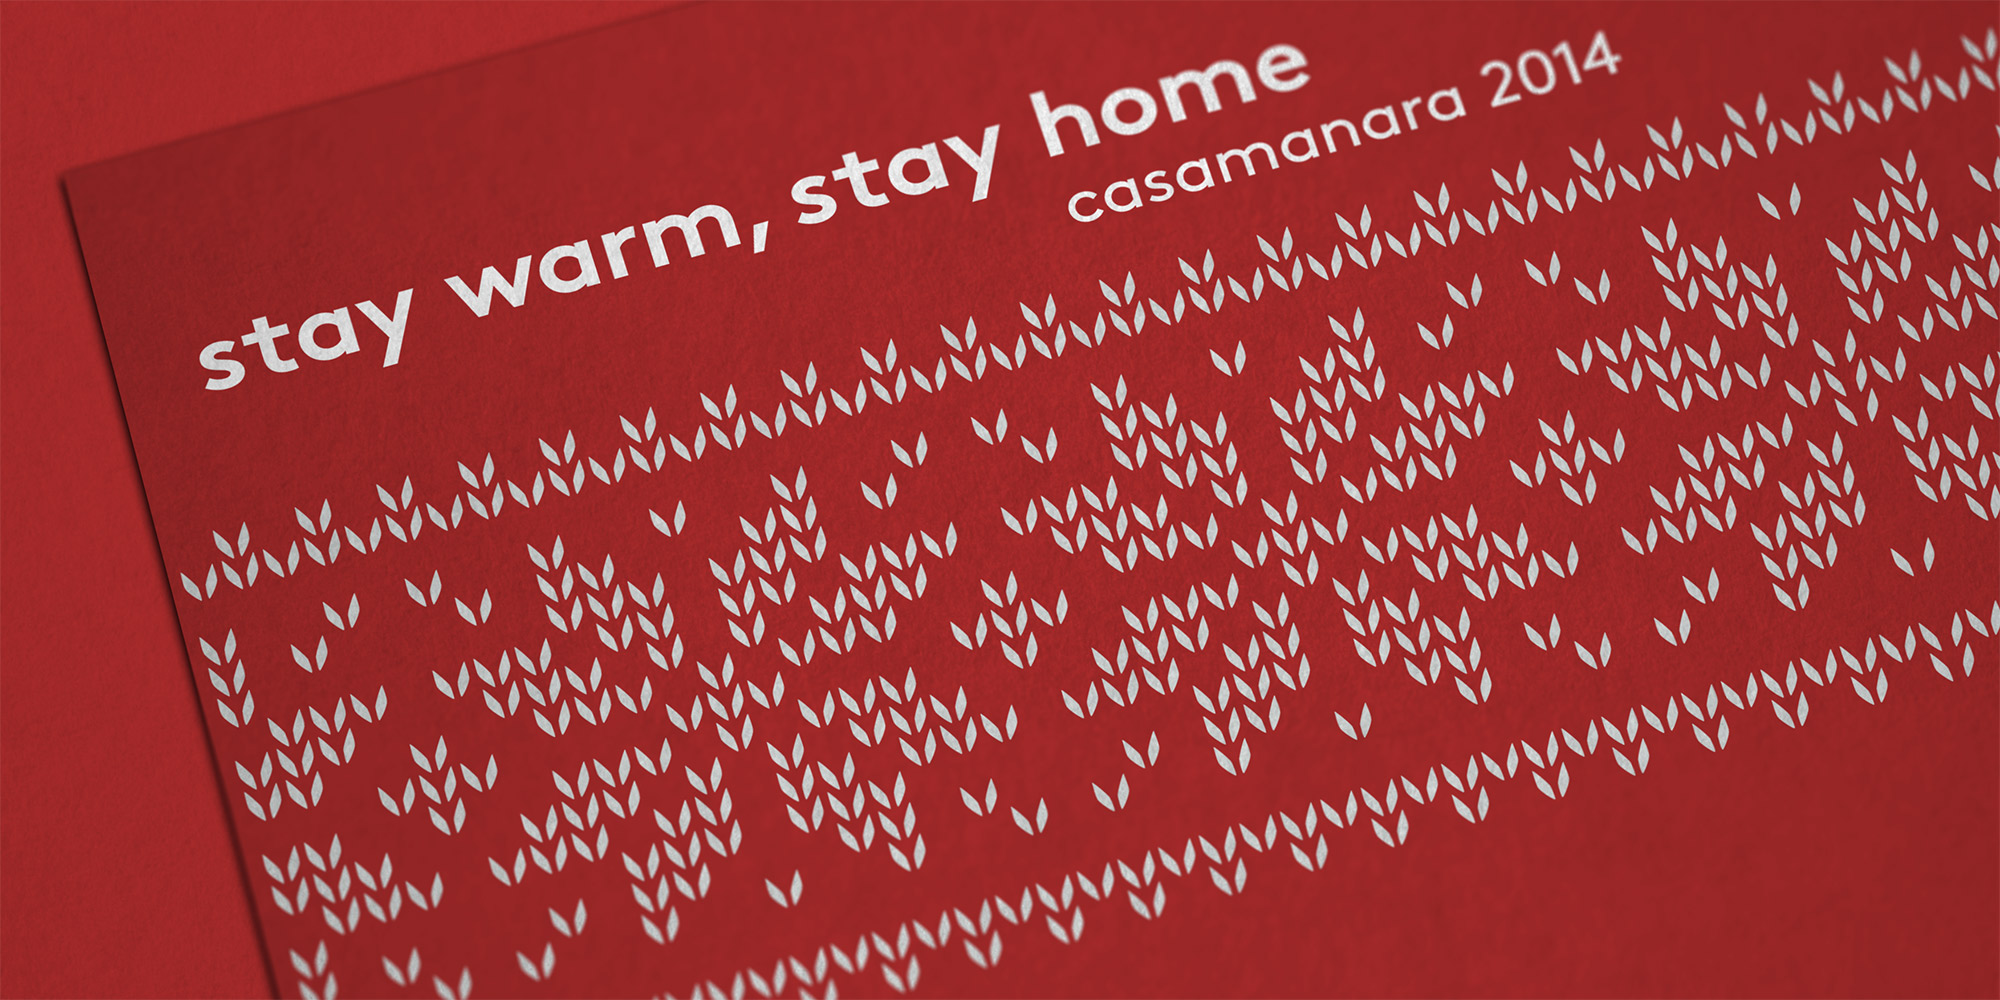 Casamanara Holiday Card 2014